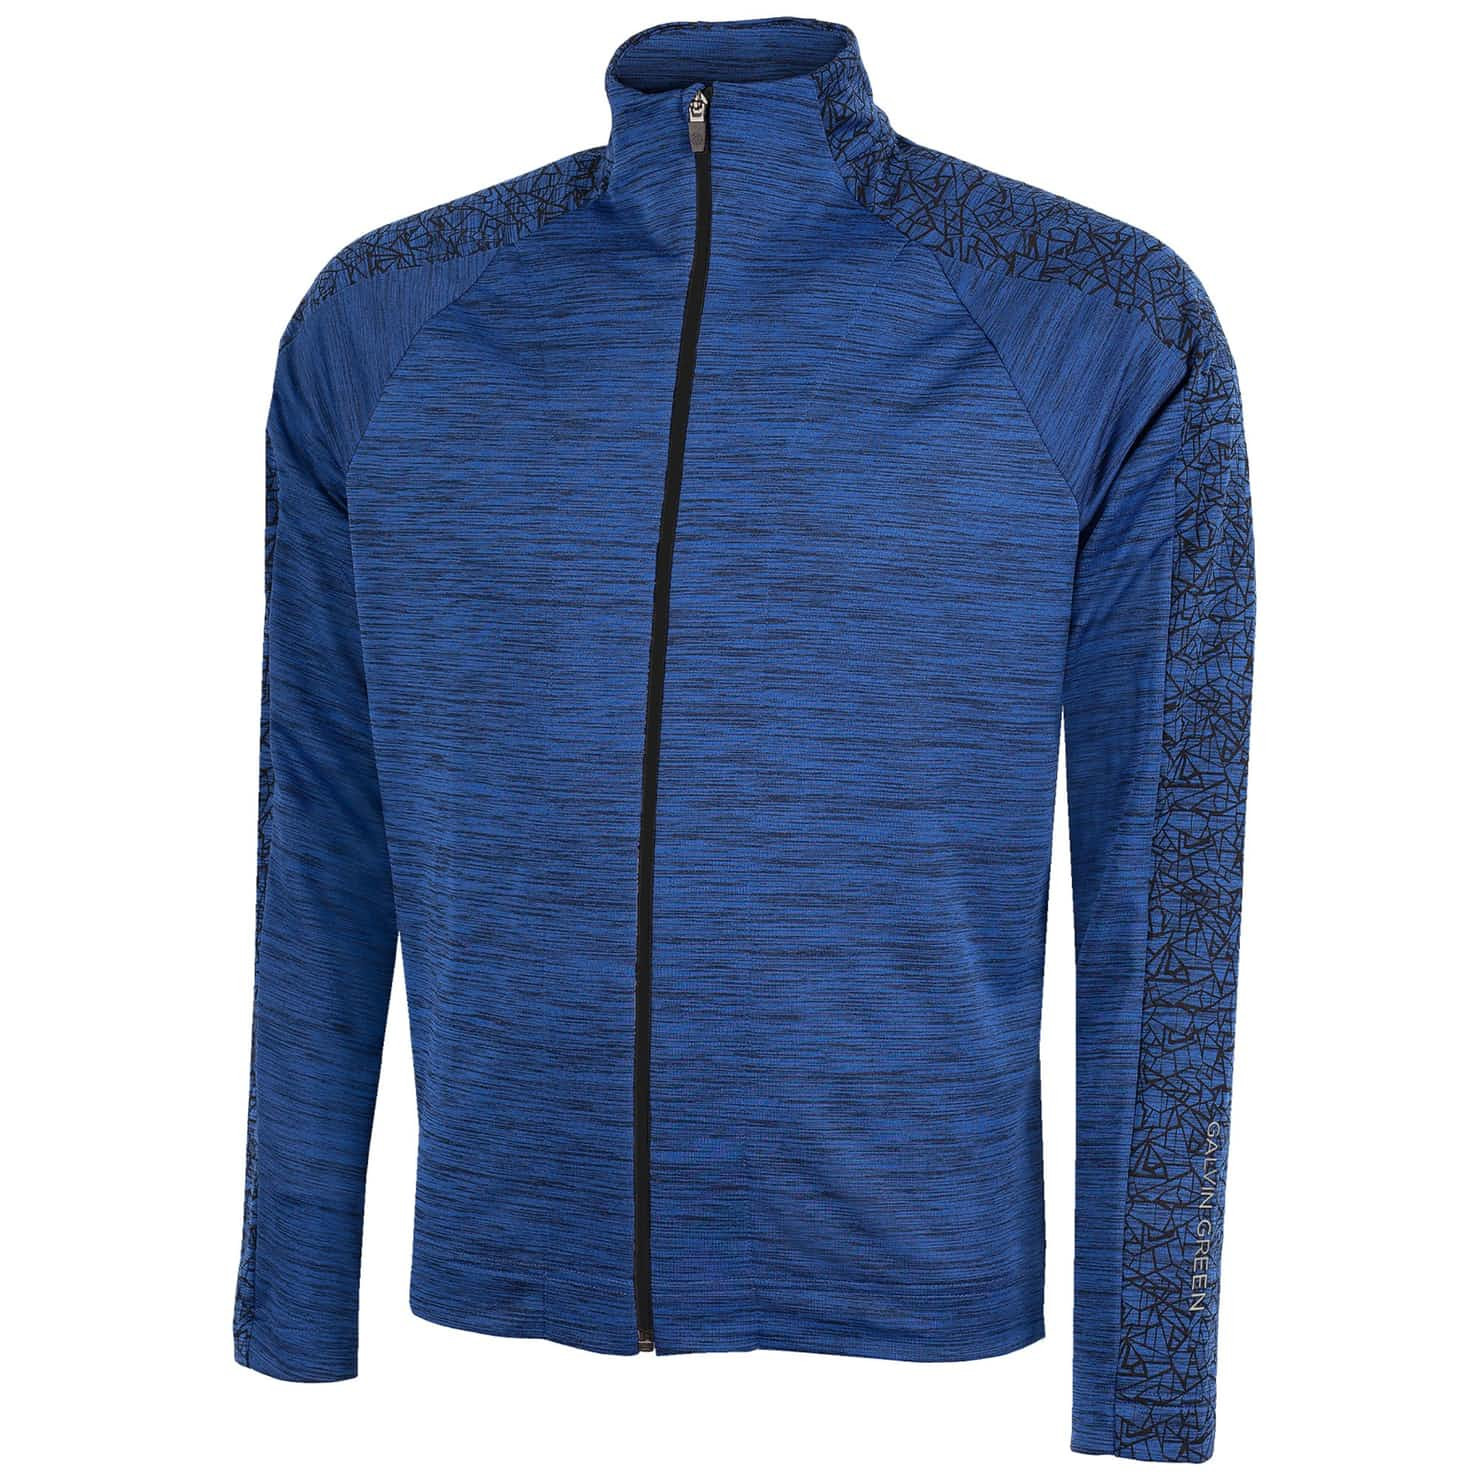 Declan Insula Full Zip Jacket Surf Blue - SS20